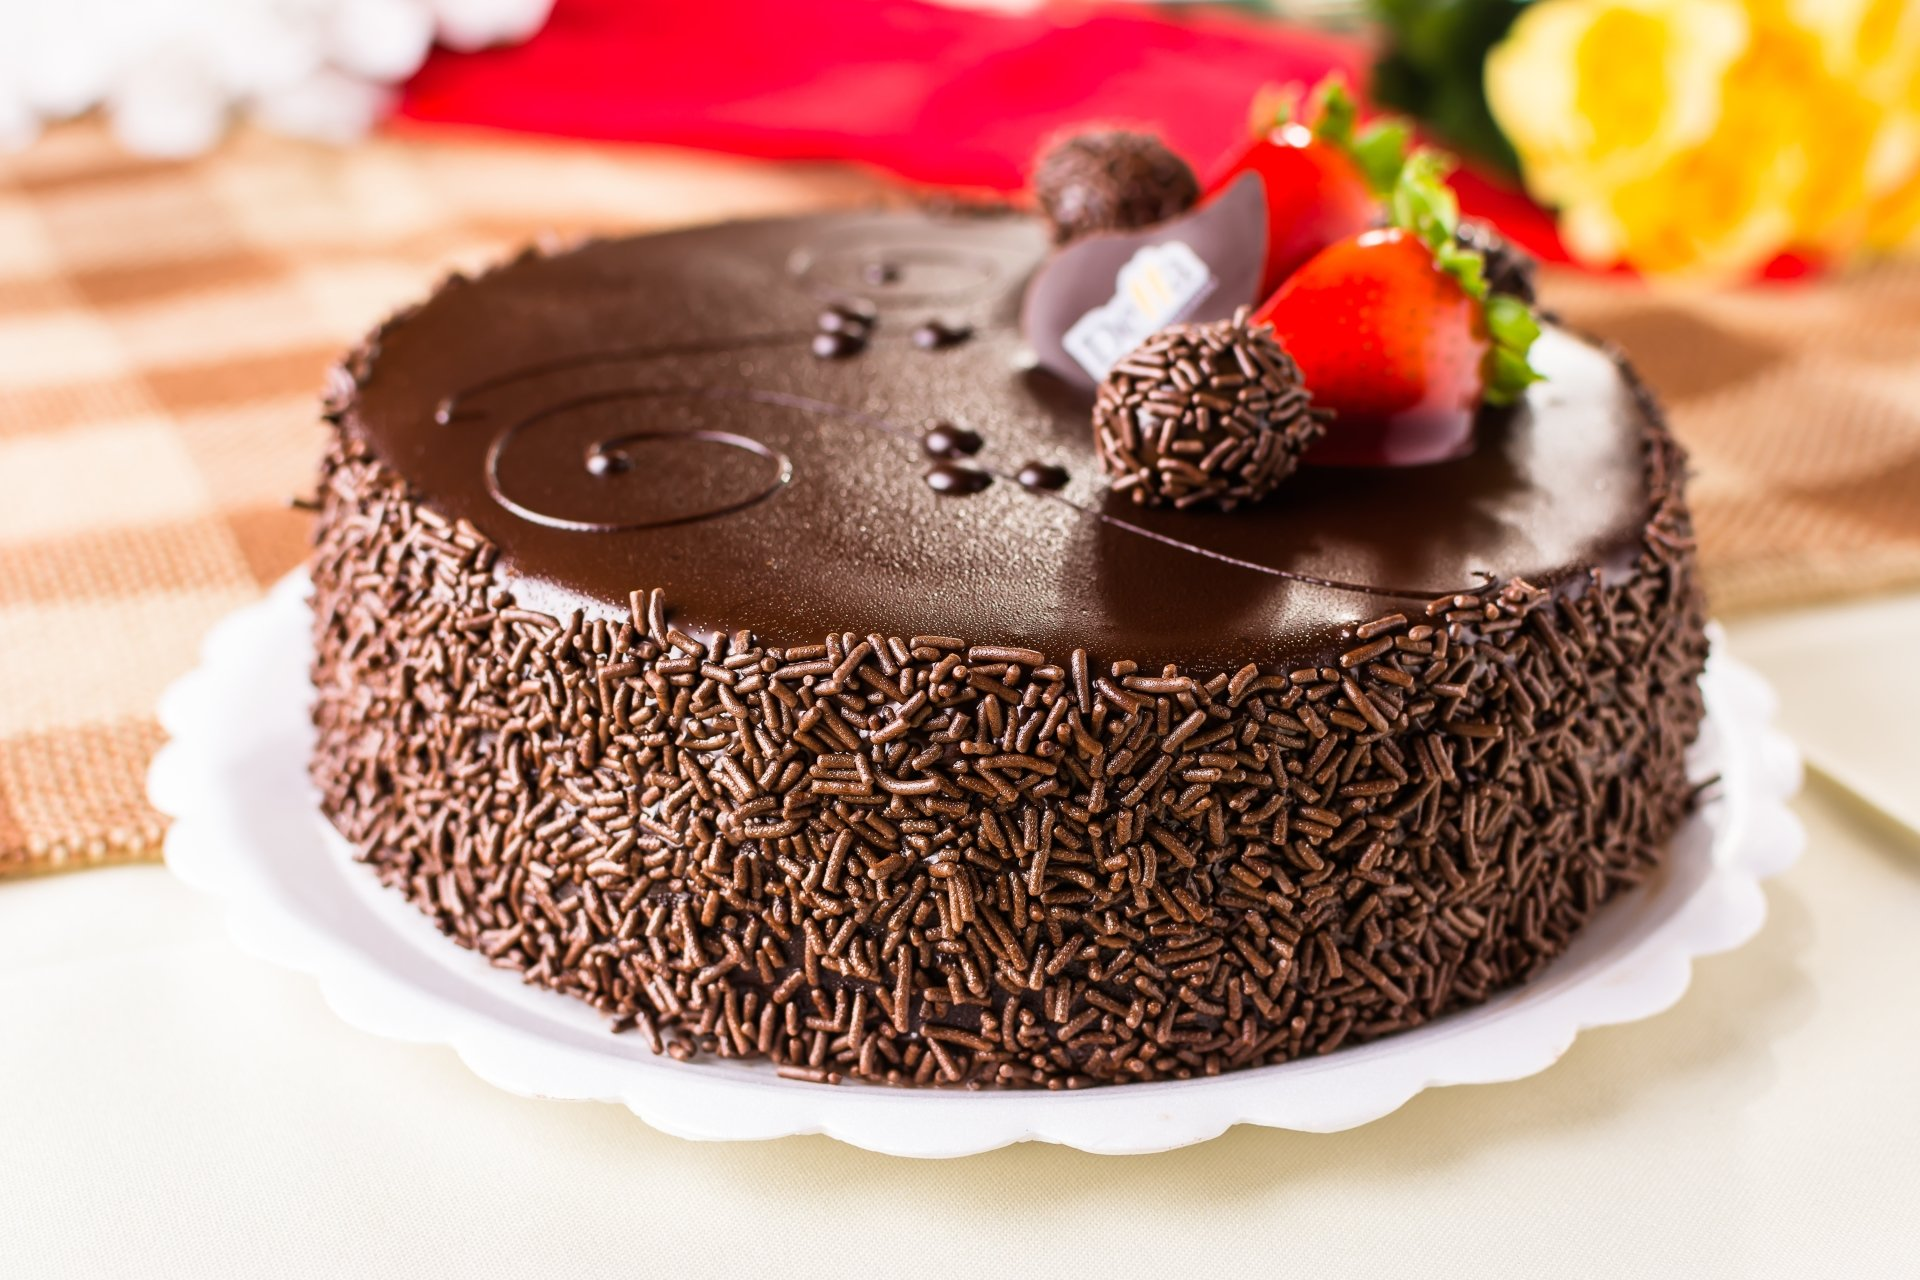 Food - Cake  Pastry Chocolate Wallpaper